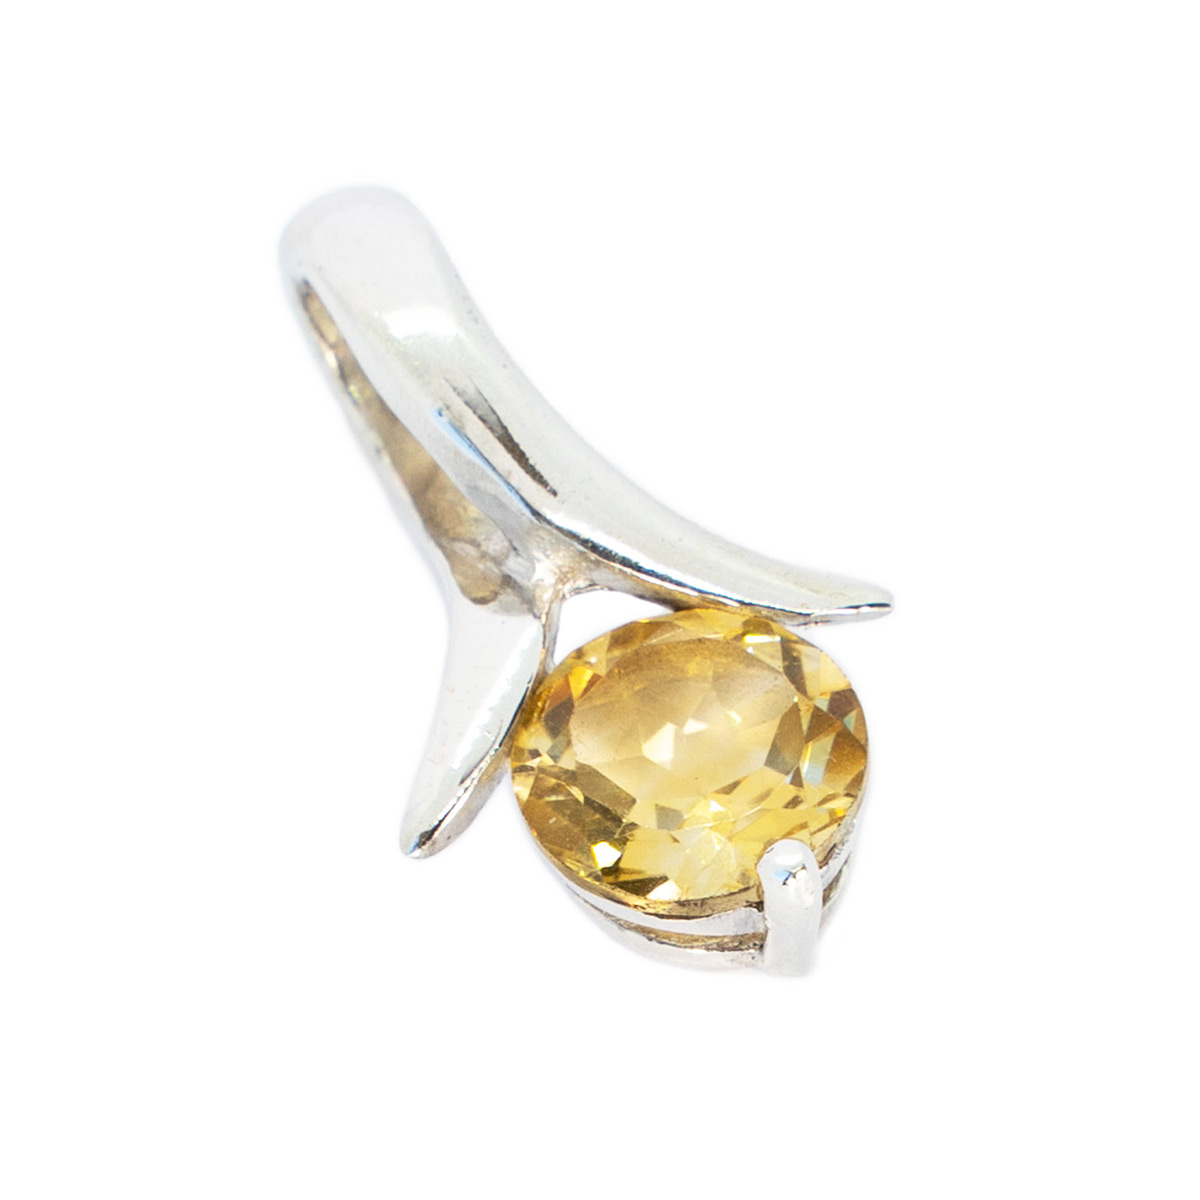 Sri Avinash Infused™ 1.1cts Citrine Pendant in Sterling Silver - Love & Compassion Infusion